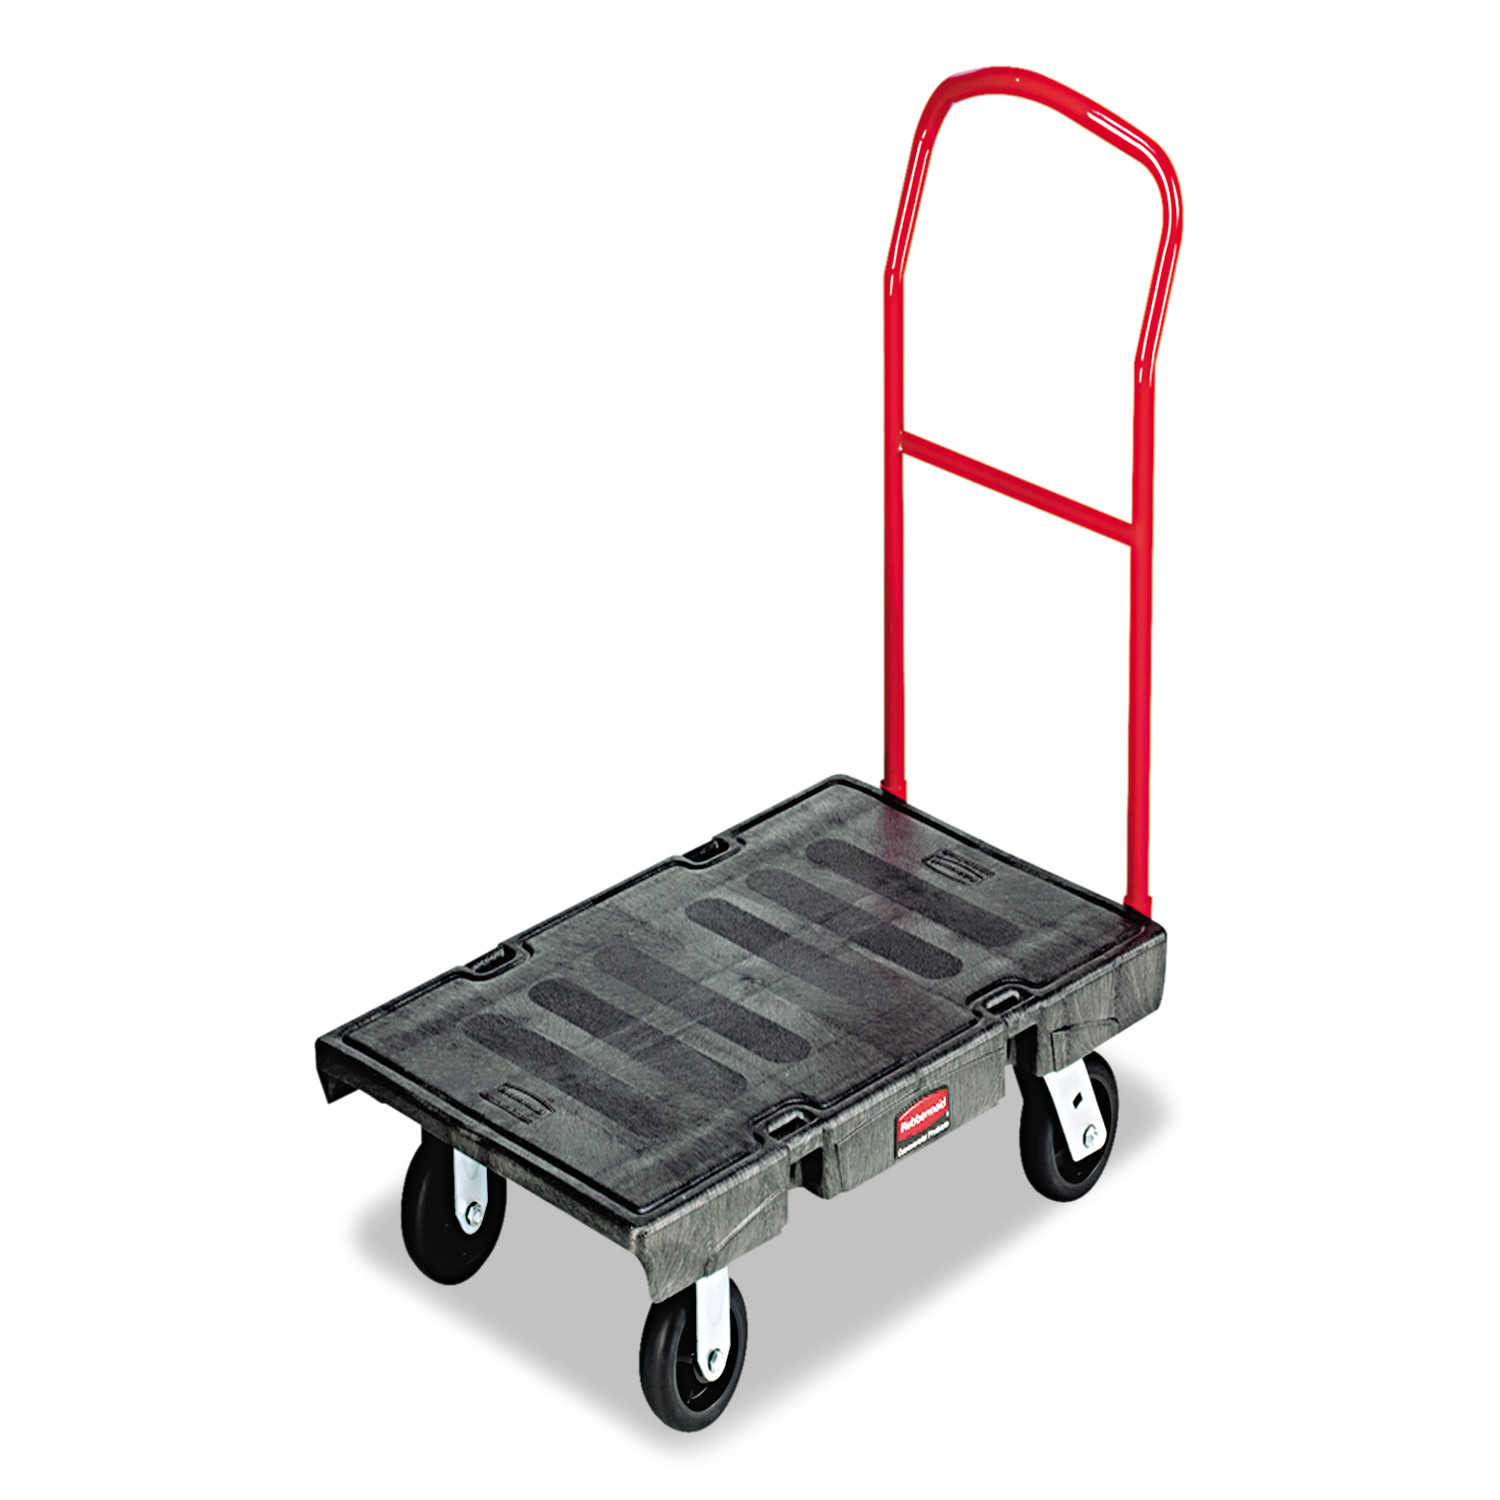 Rubbermaid Commercial Heavy-Duty Platform Truck Cart, 2000 lb Capacity, 24' x 48' Platform, Black